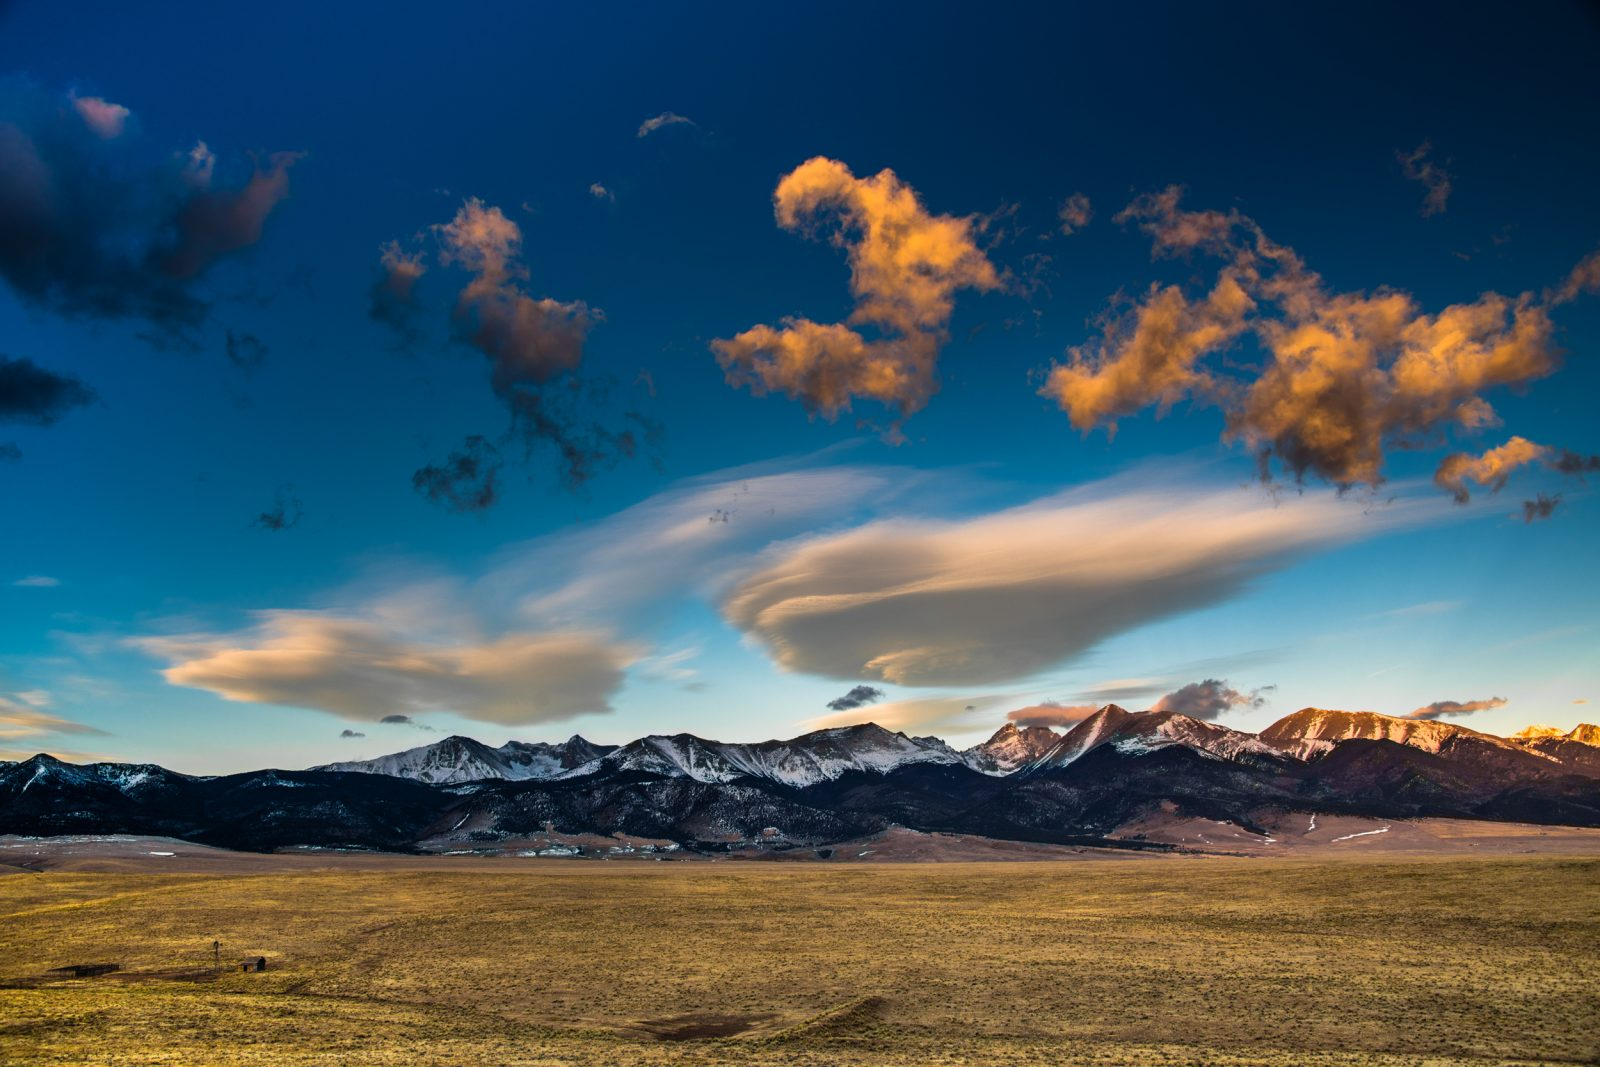 Sunrise Clouds Over Rockies